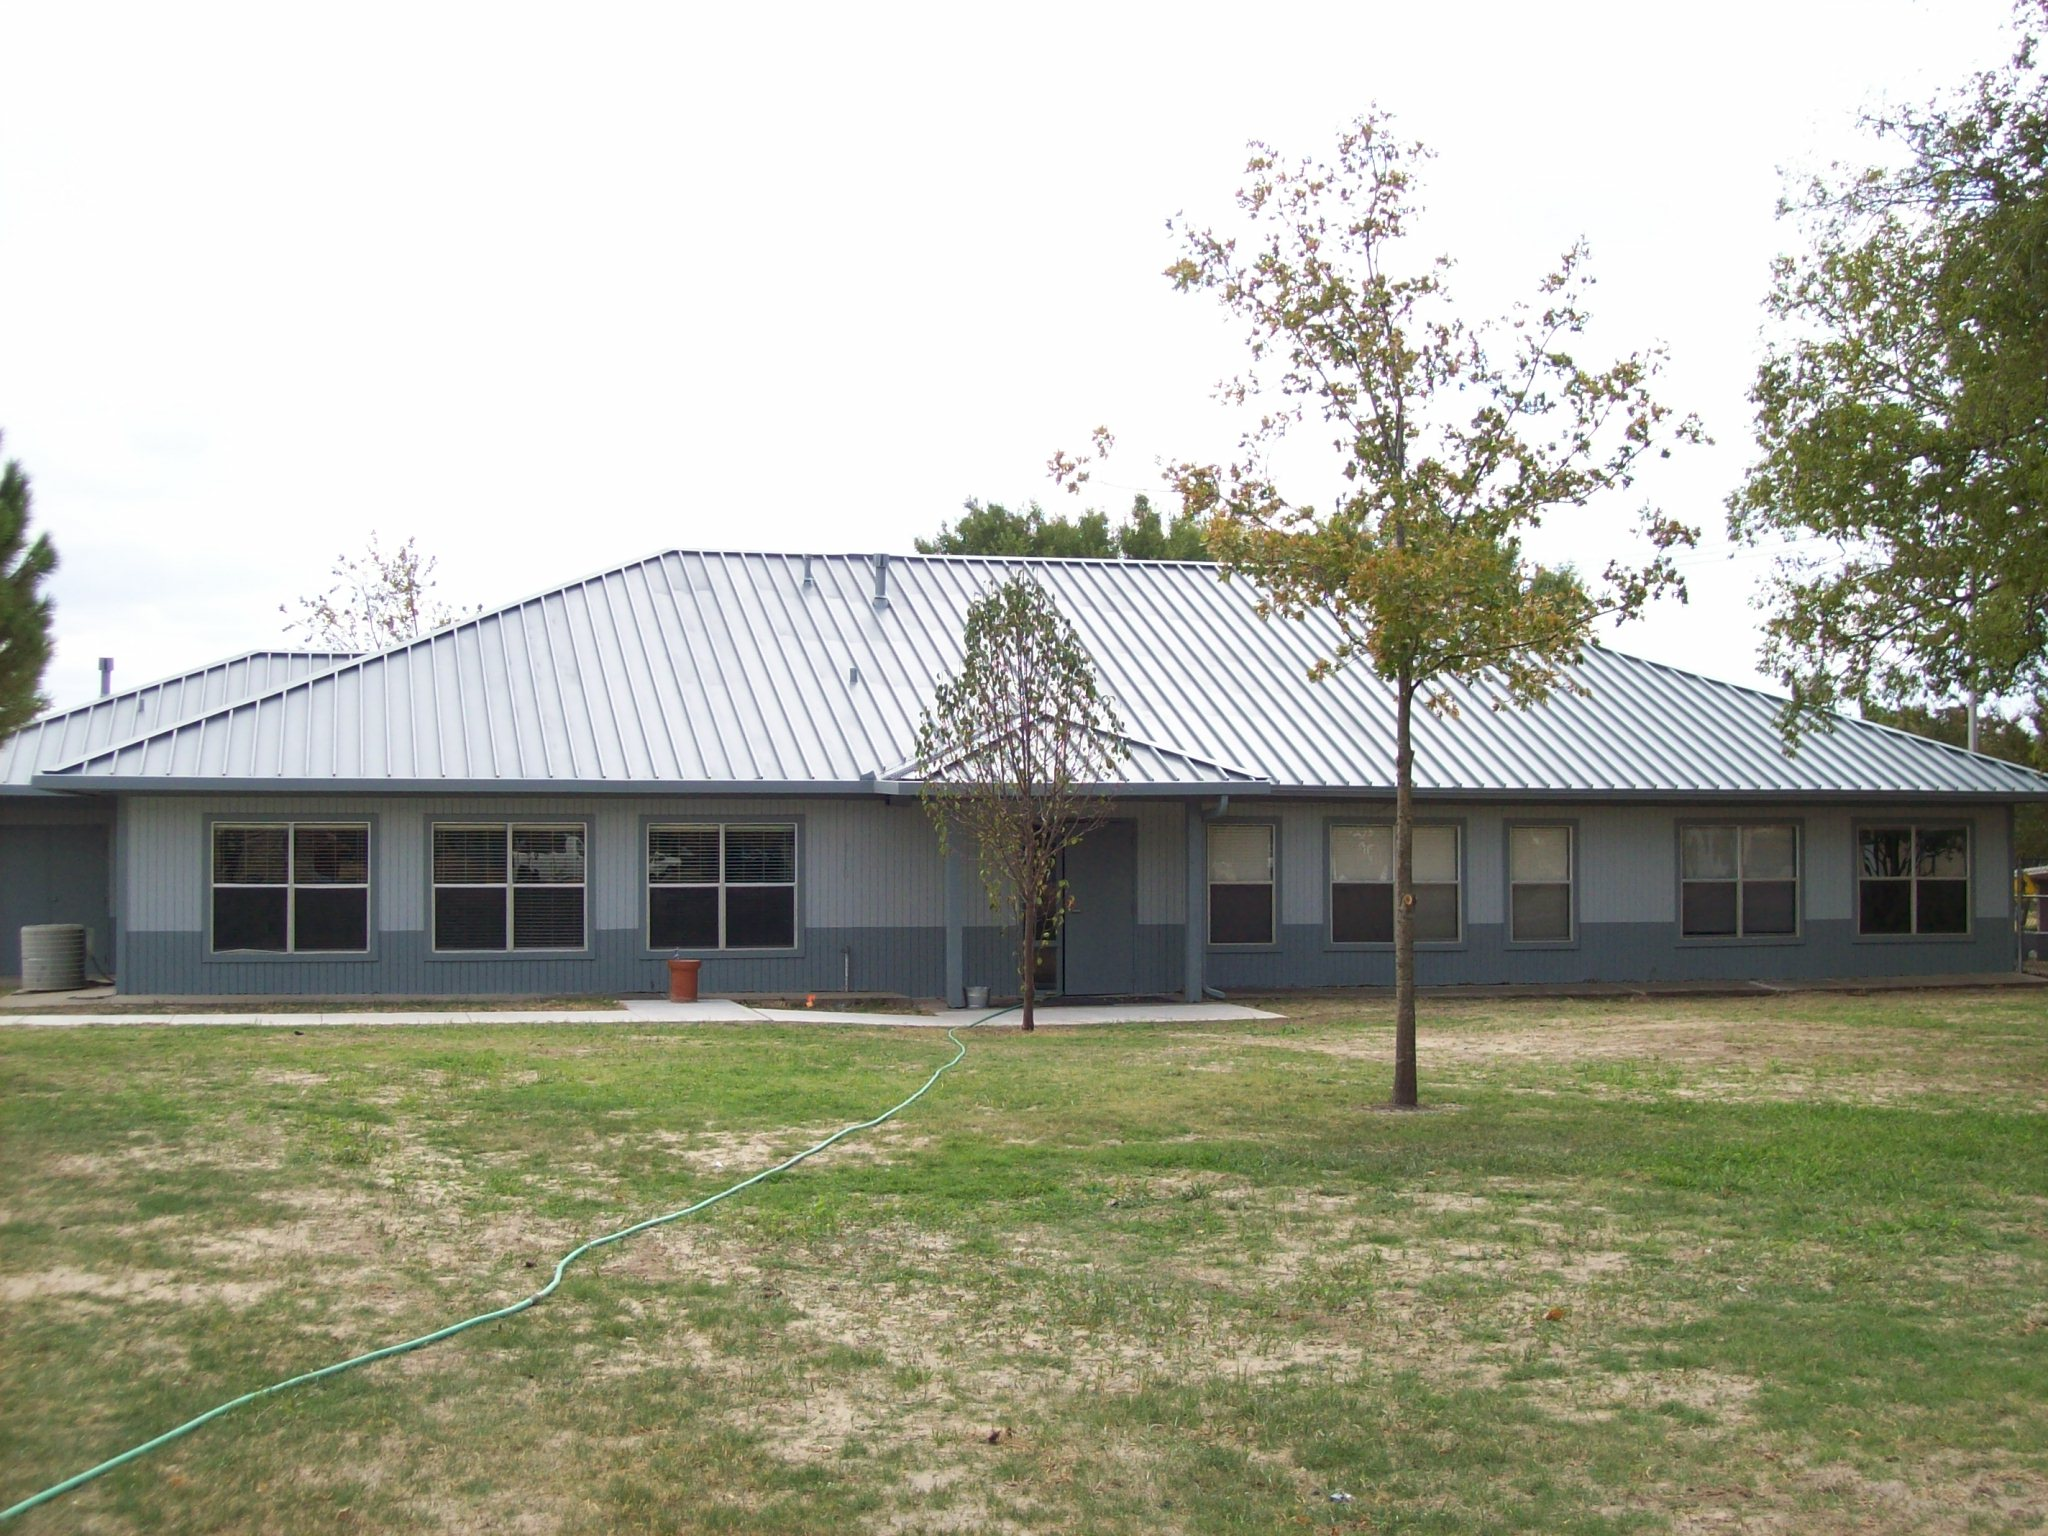 Front view of a recreation center.